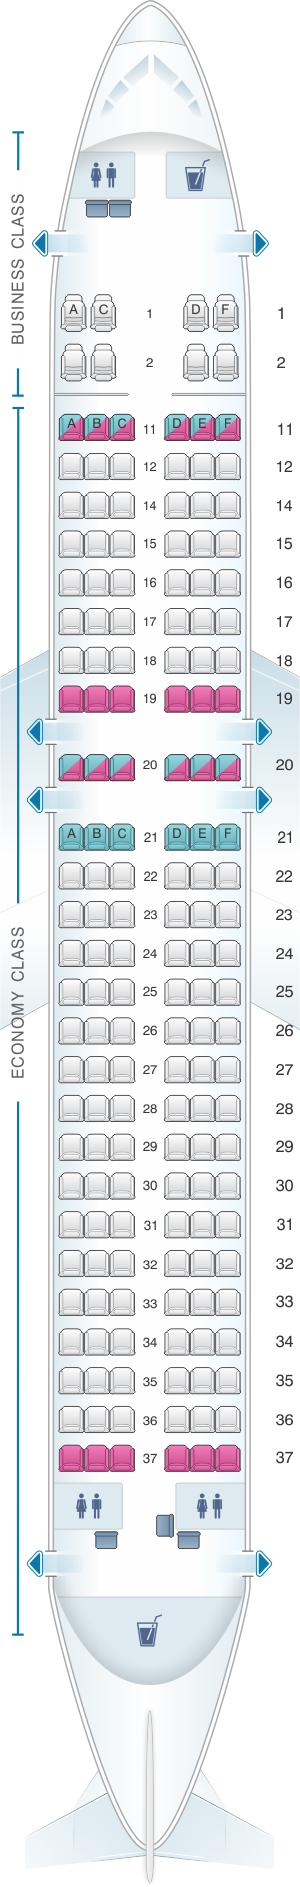 Seat map for Kingfisher Airlines Airbus A320 200 164PAX(A)